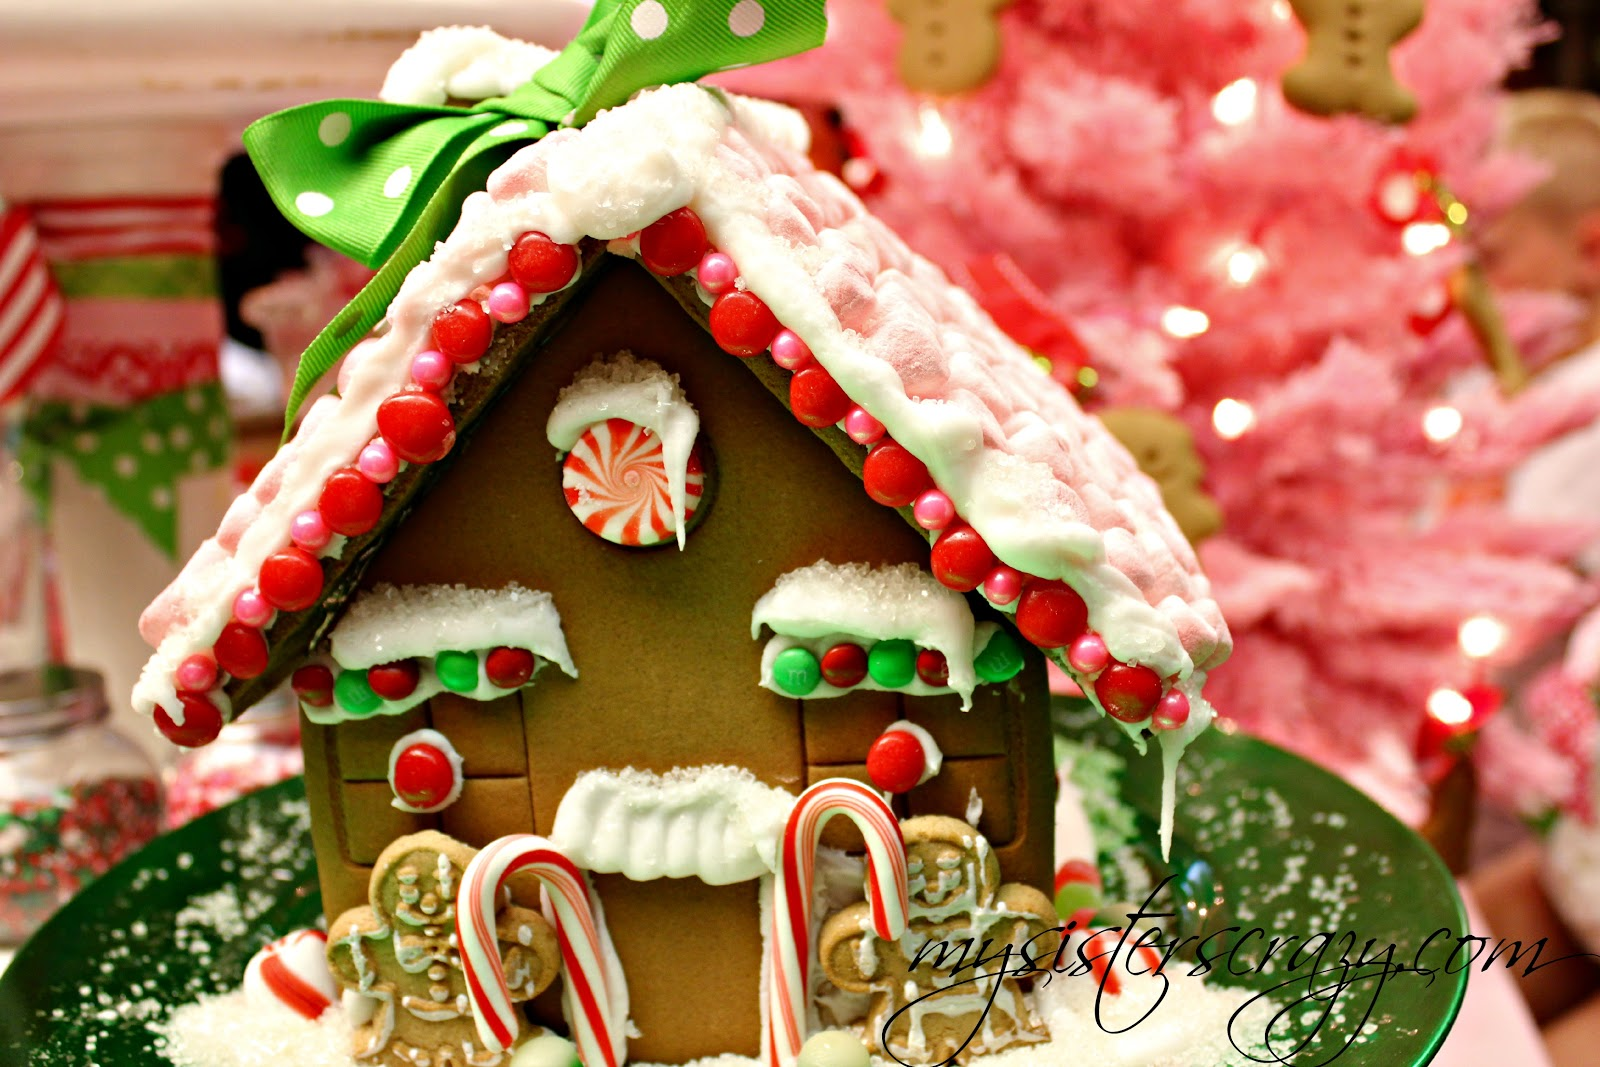 Decorated House Cookies Decorating Their House